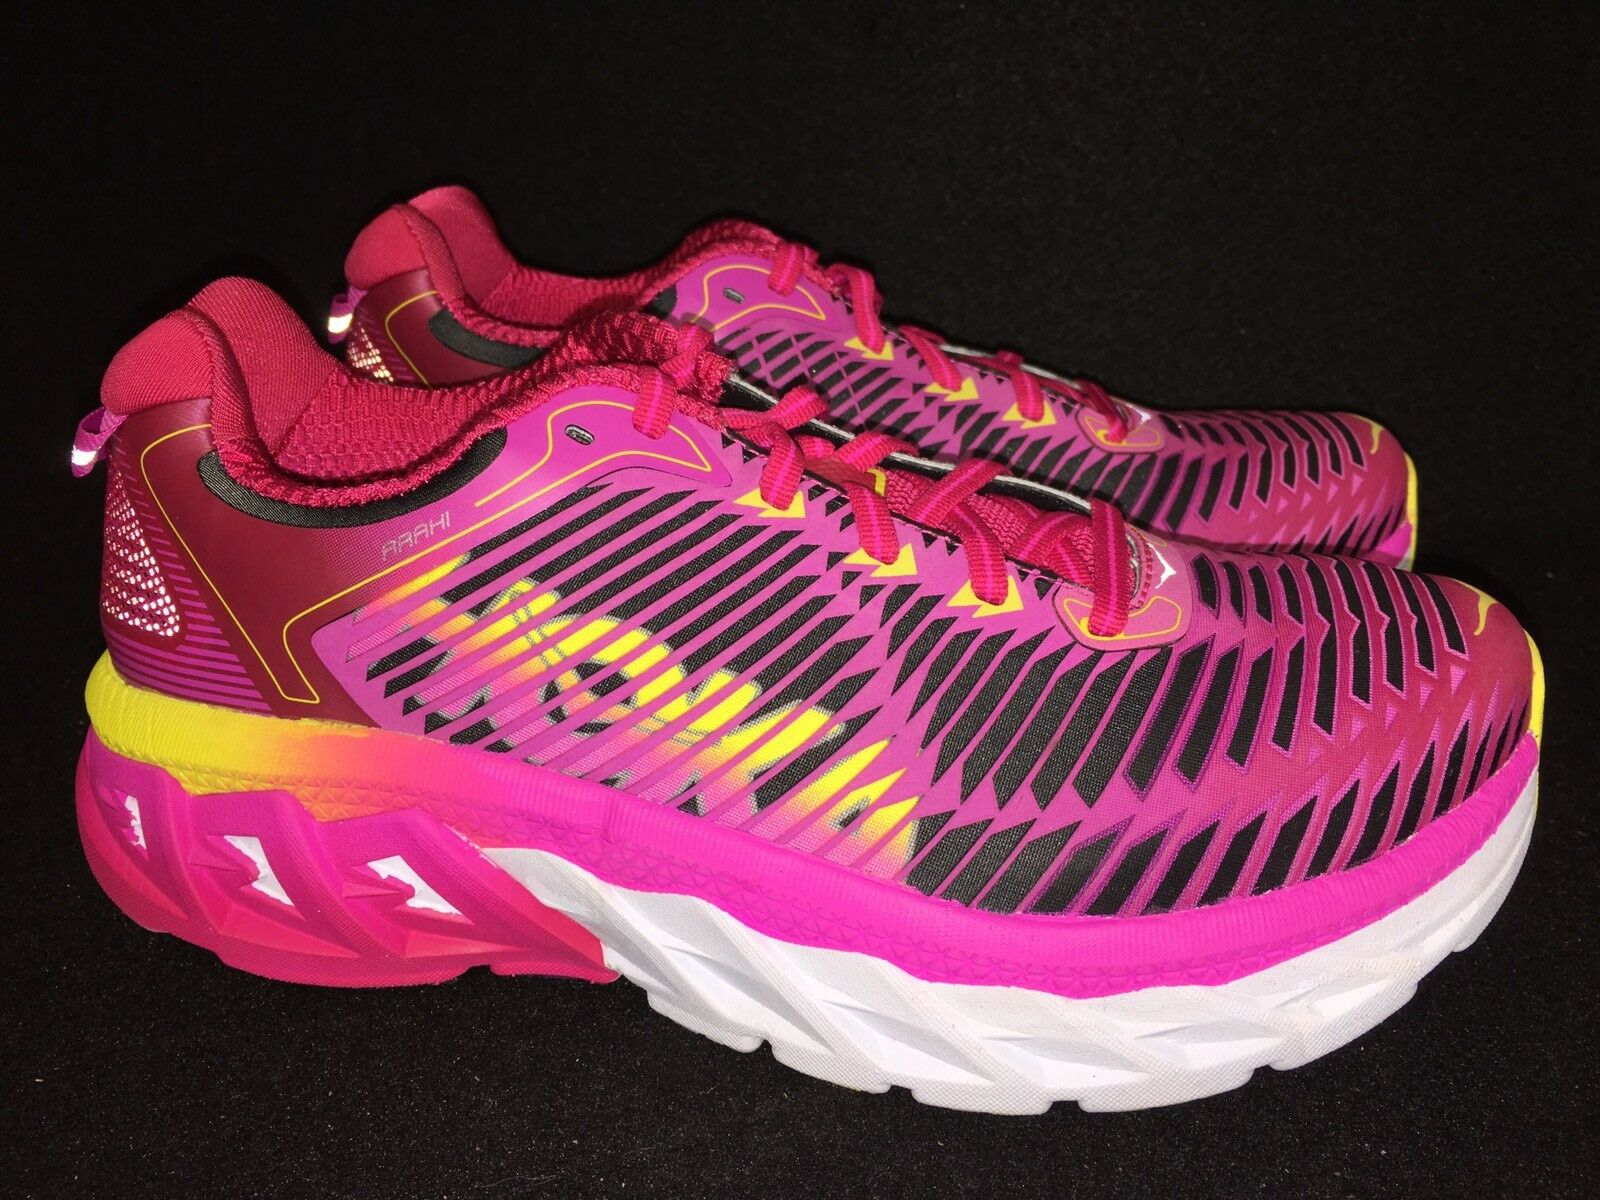 HOKA ONE ONE ARAHI Virtual Pink Neon Fuchsia RUNNING SHOES Tennis Athletic Women